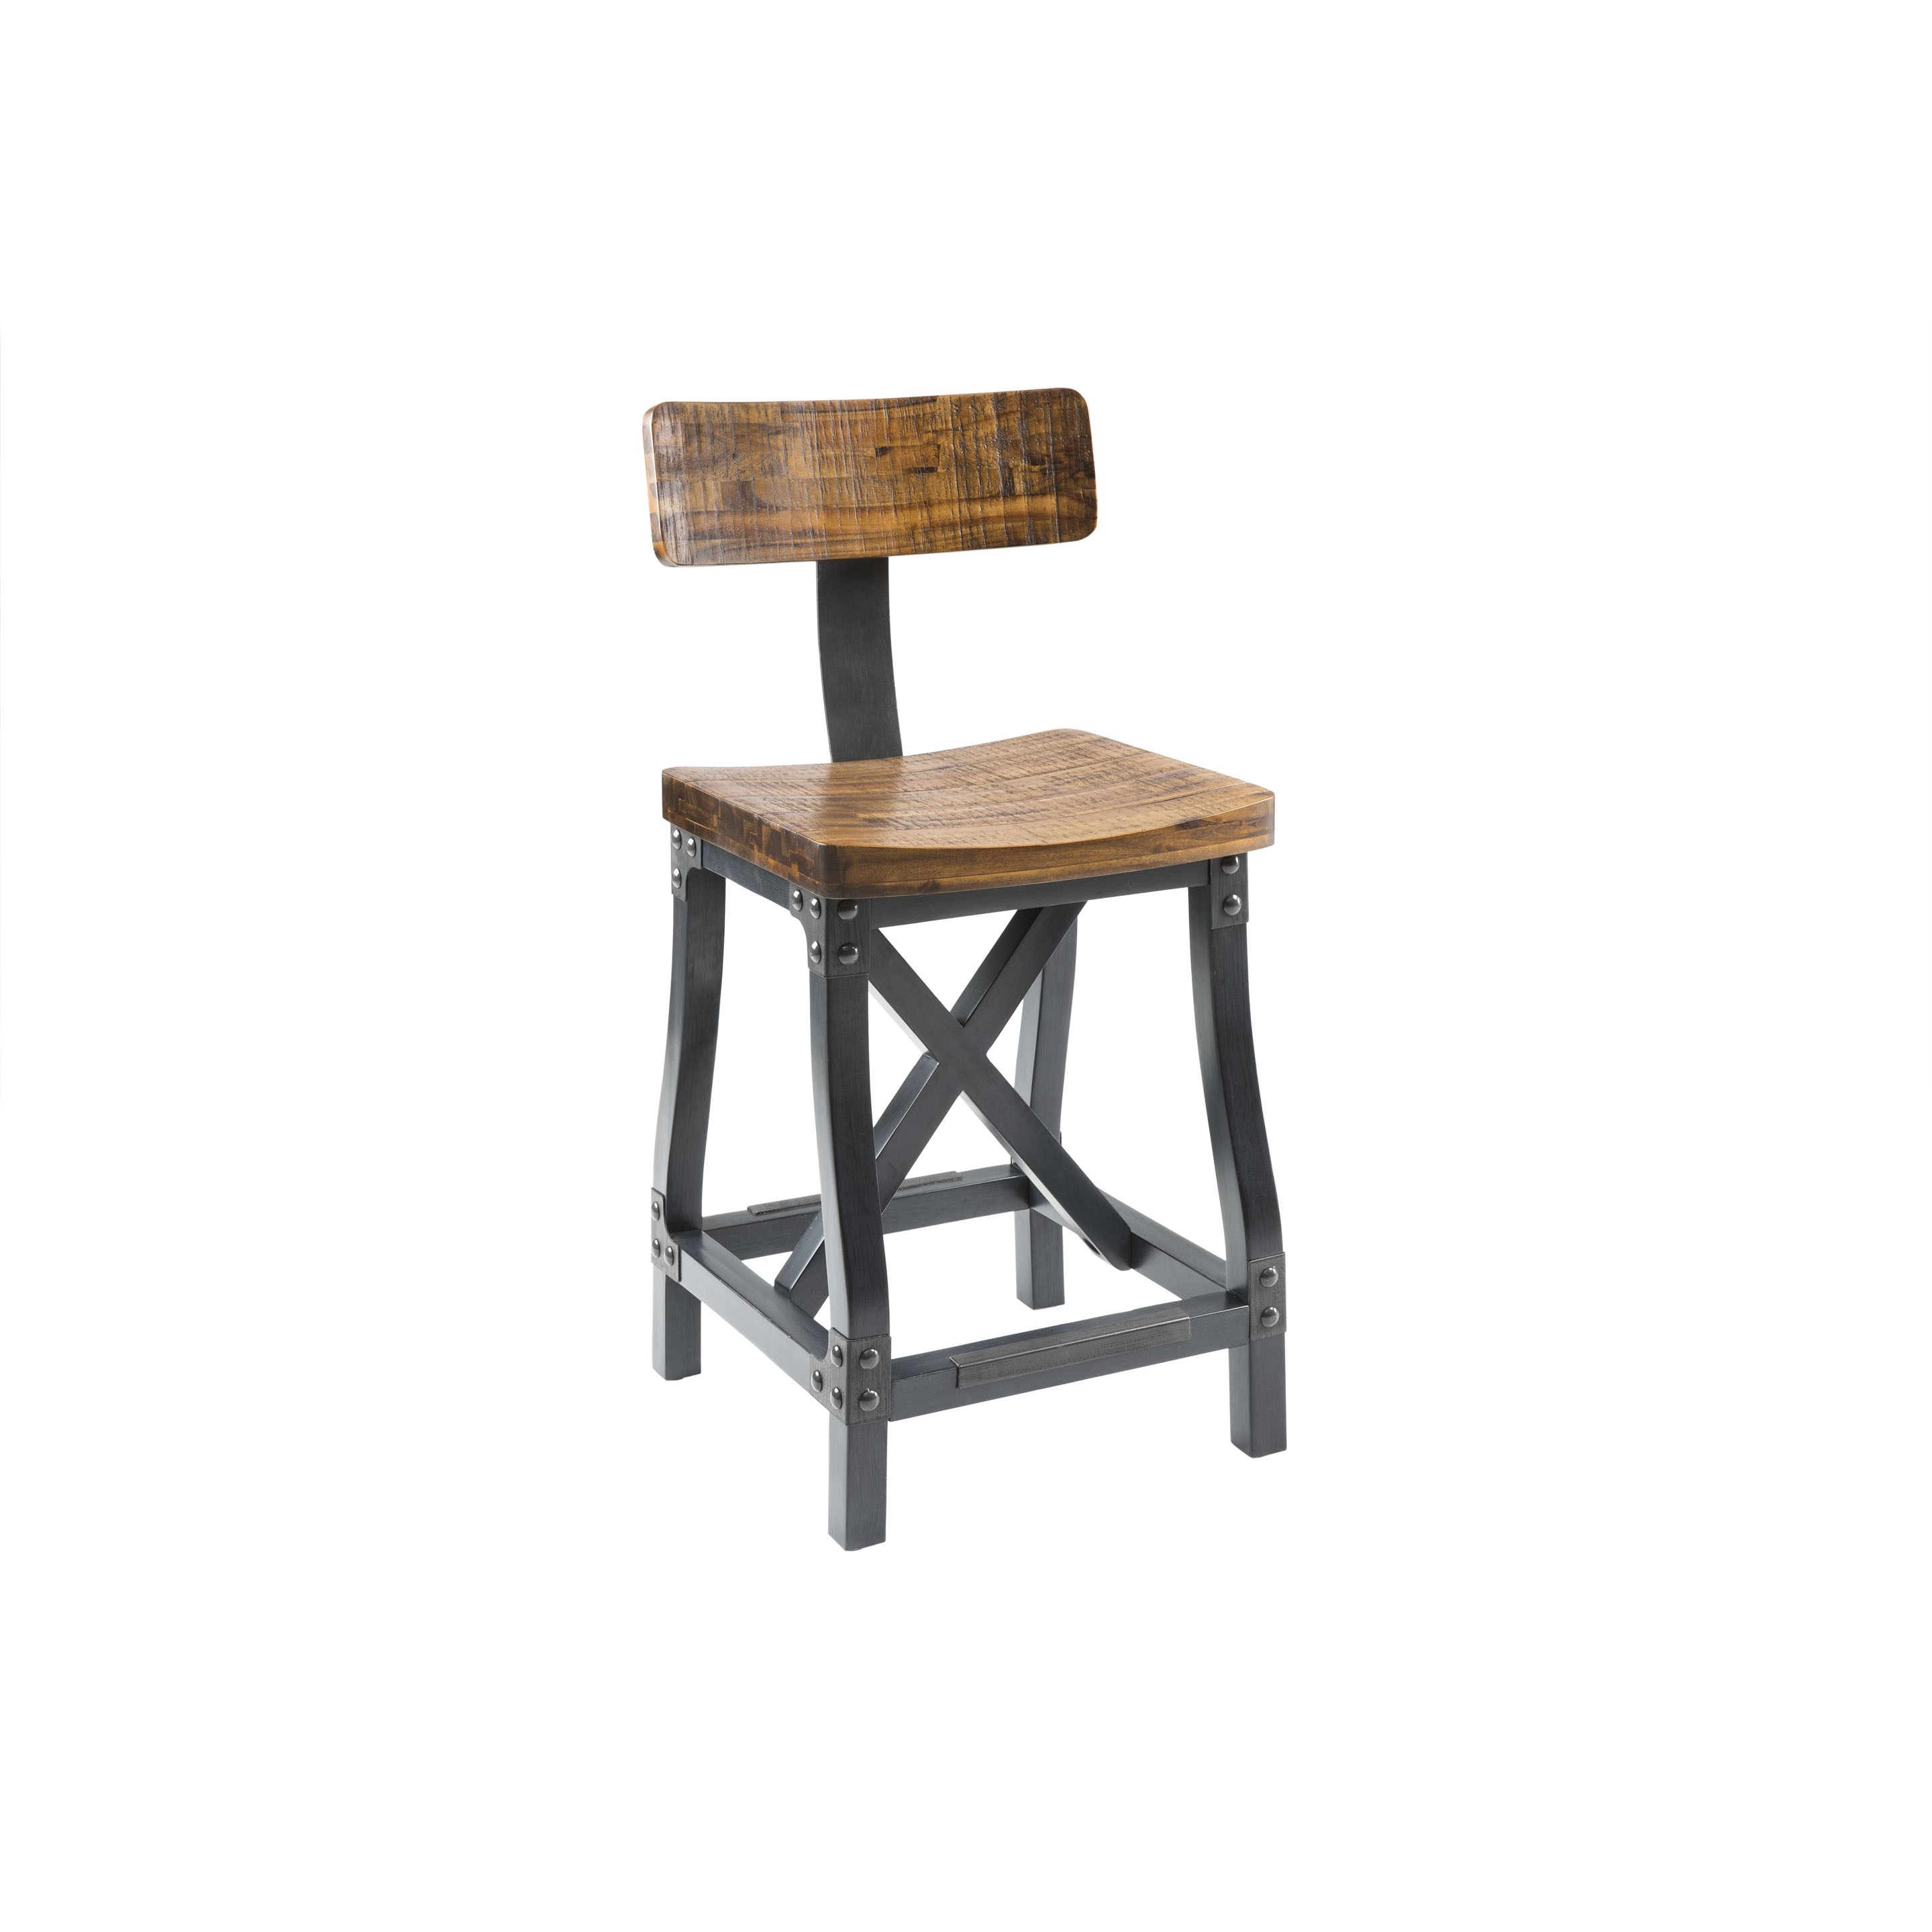 Attractive Industrial Counter Height Stools Part - 11: Cheyenne Counter Height Bar Stool W/Back | Rustic Counter Stools |  Furniture | Abode U0026 Company